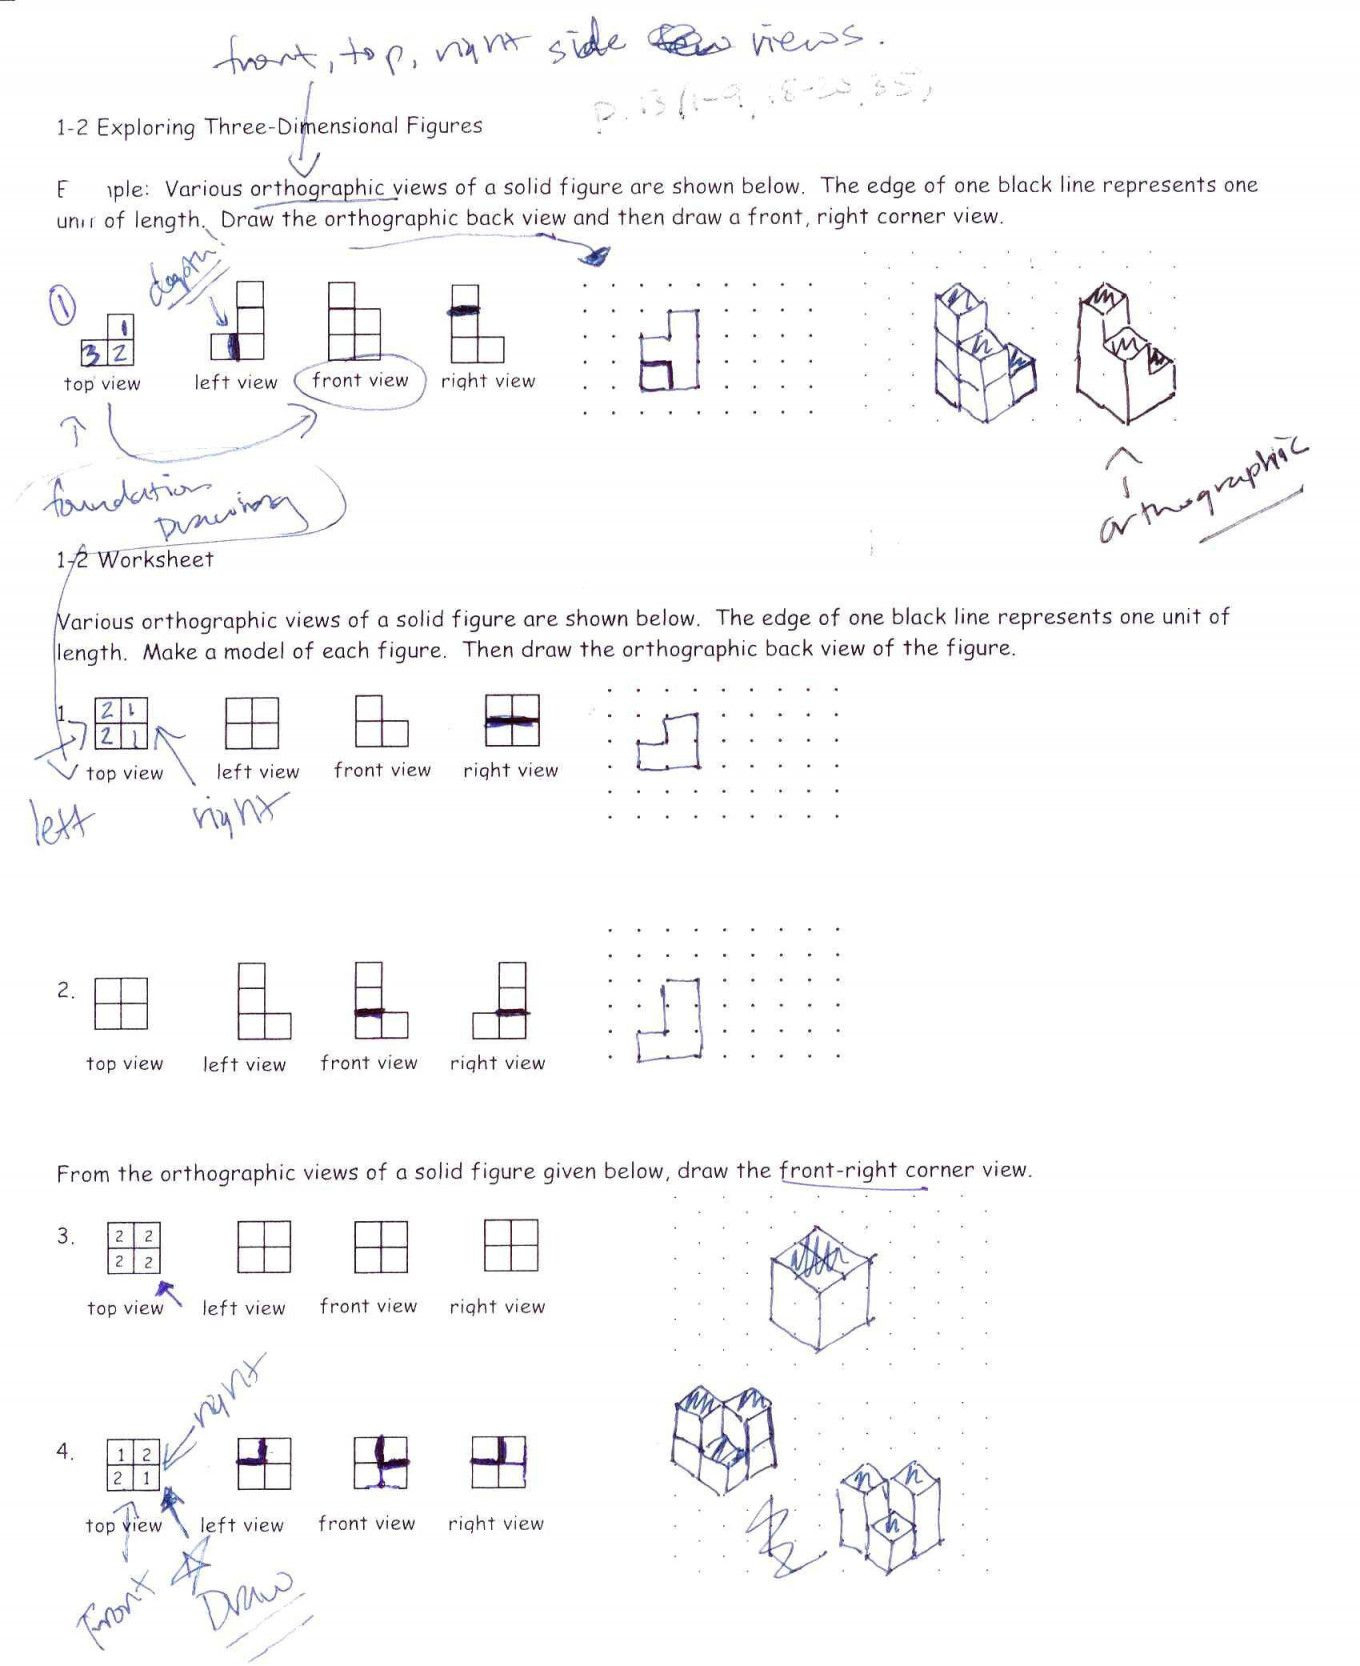 Pearson Education Math Worksheets Answers — db excel.com